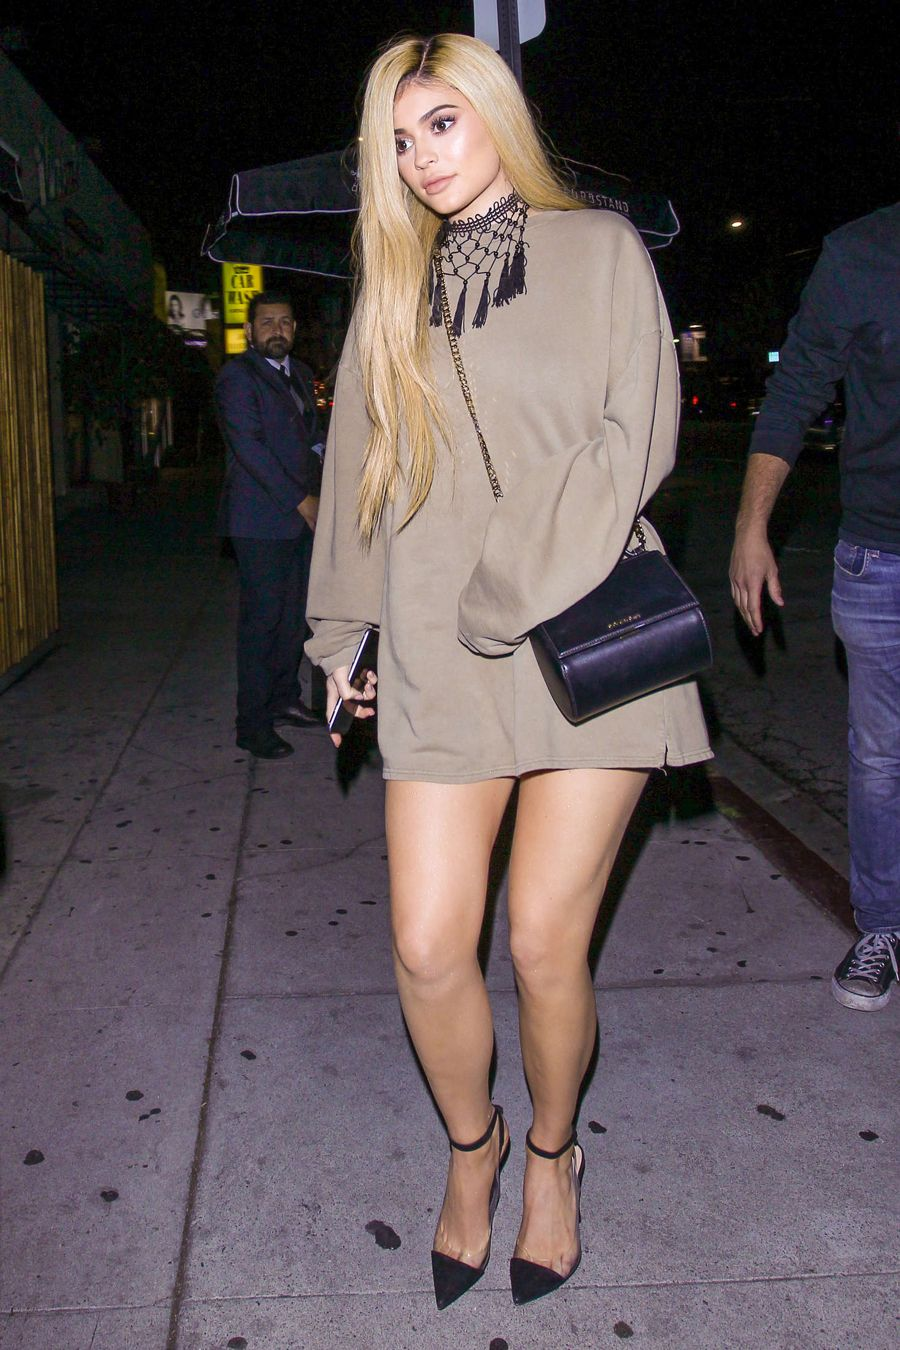 Kylie Jenner Shows her Legs at Nice Guy in Hollywood